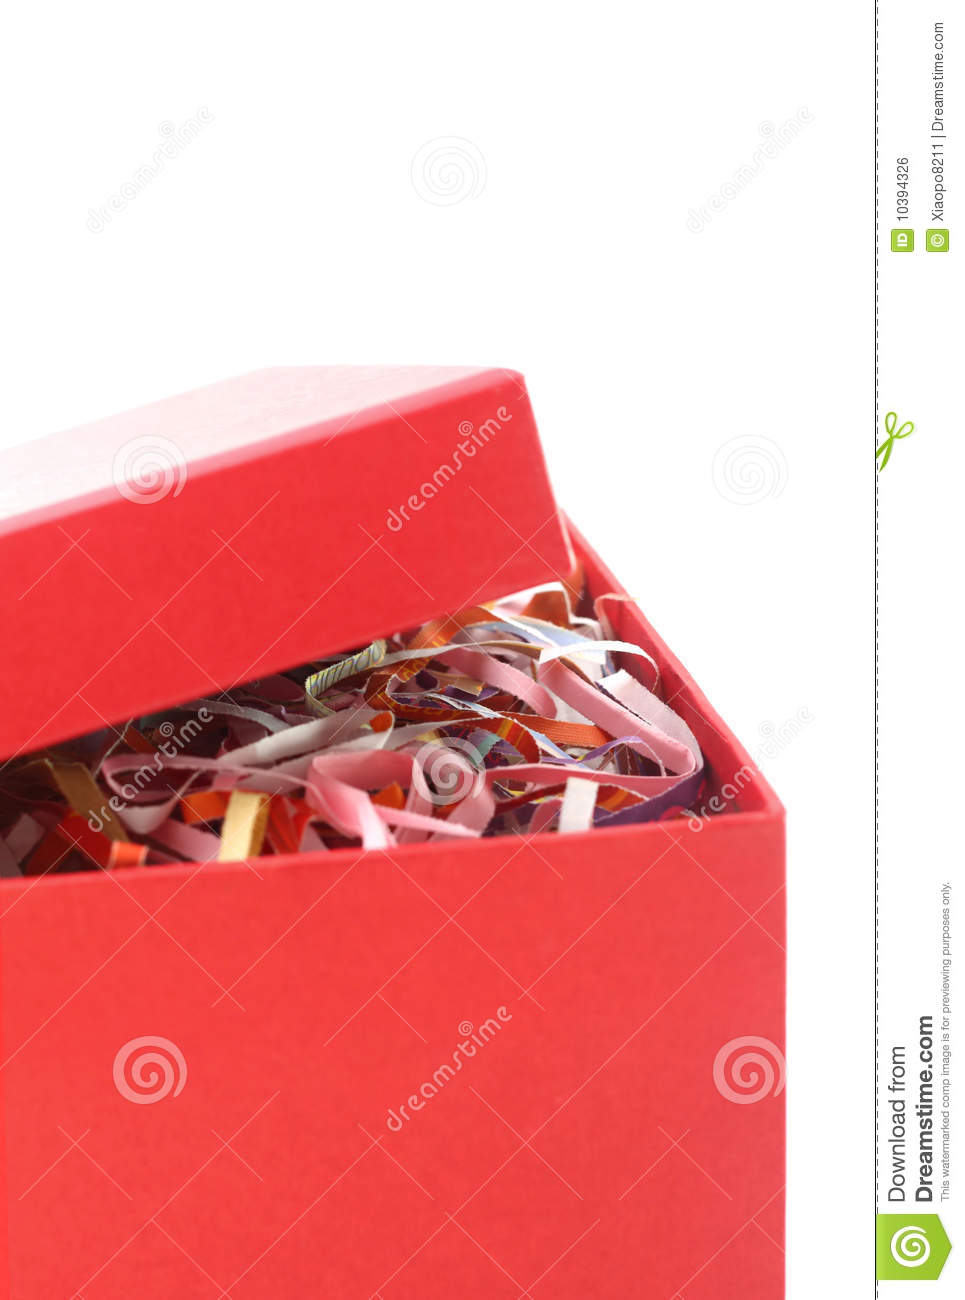 Red Gift Box Open Royalty Free Stock Image - Image: 10394326